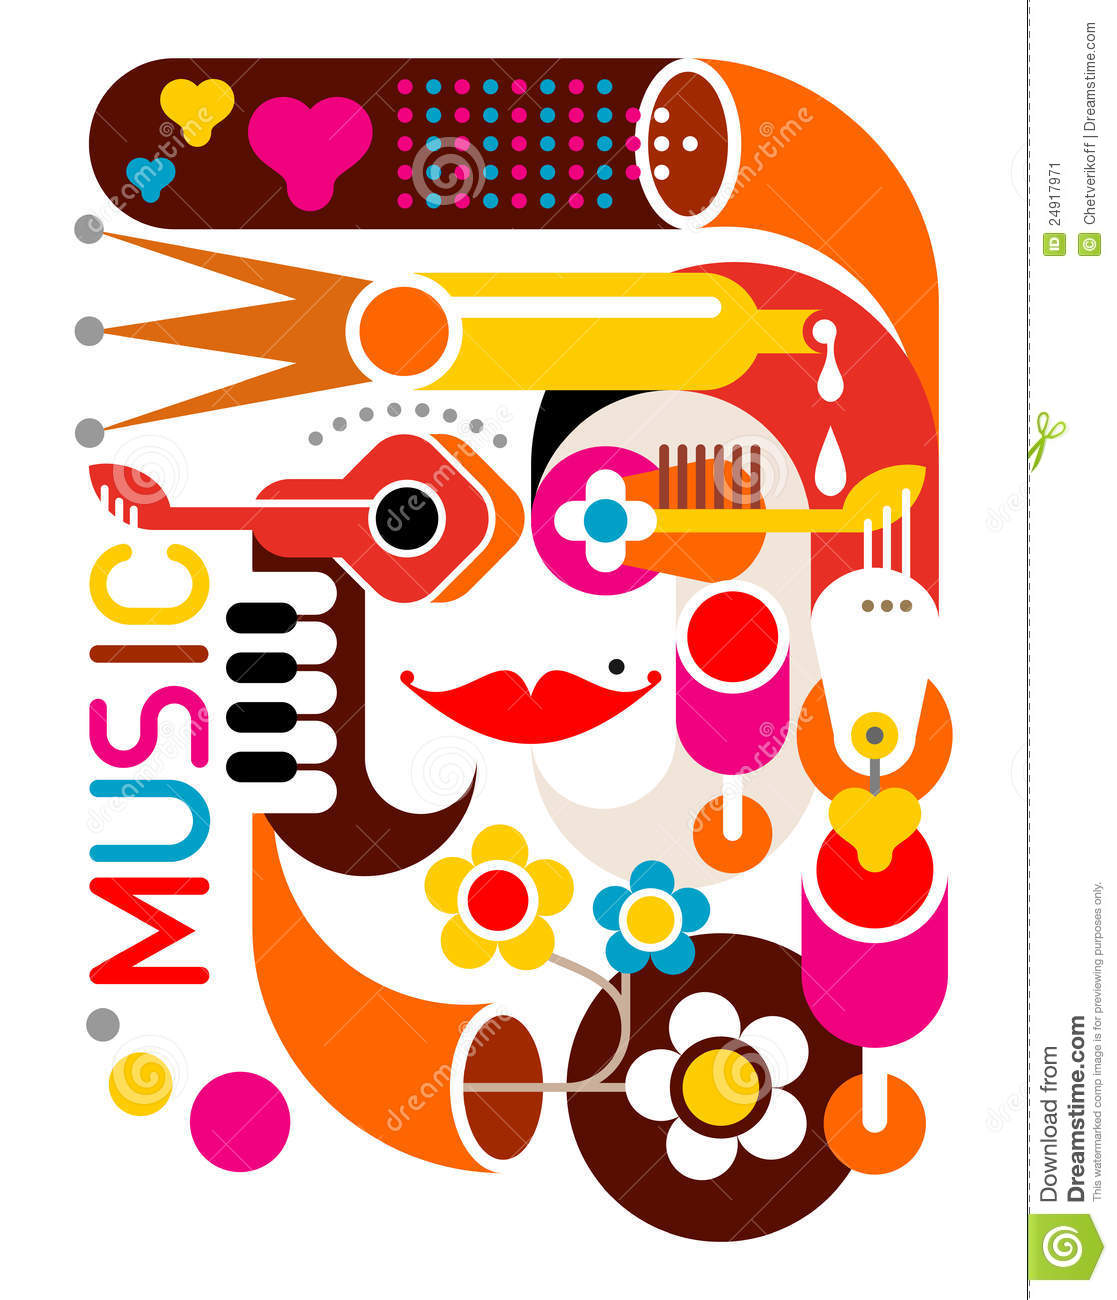 Music - Vector Poster Stock Image - Image: 24917971